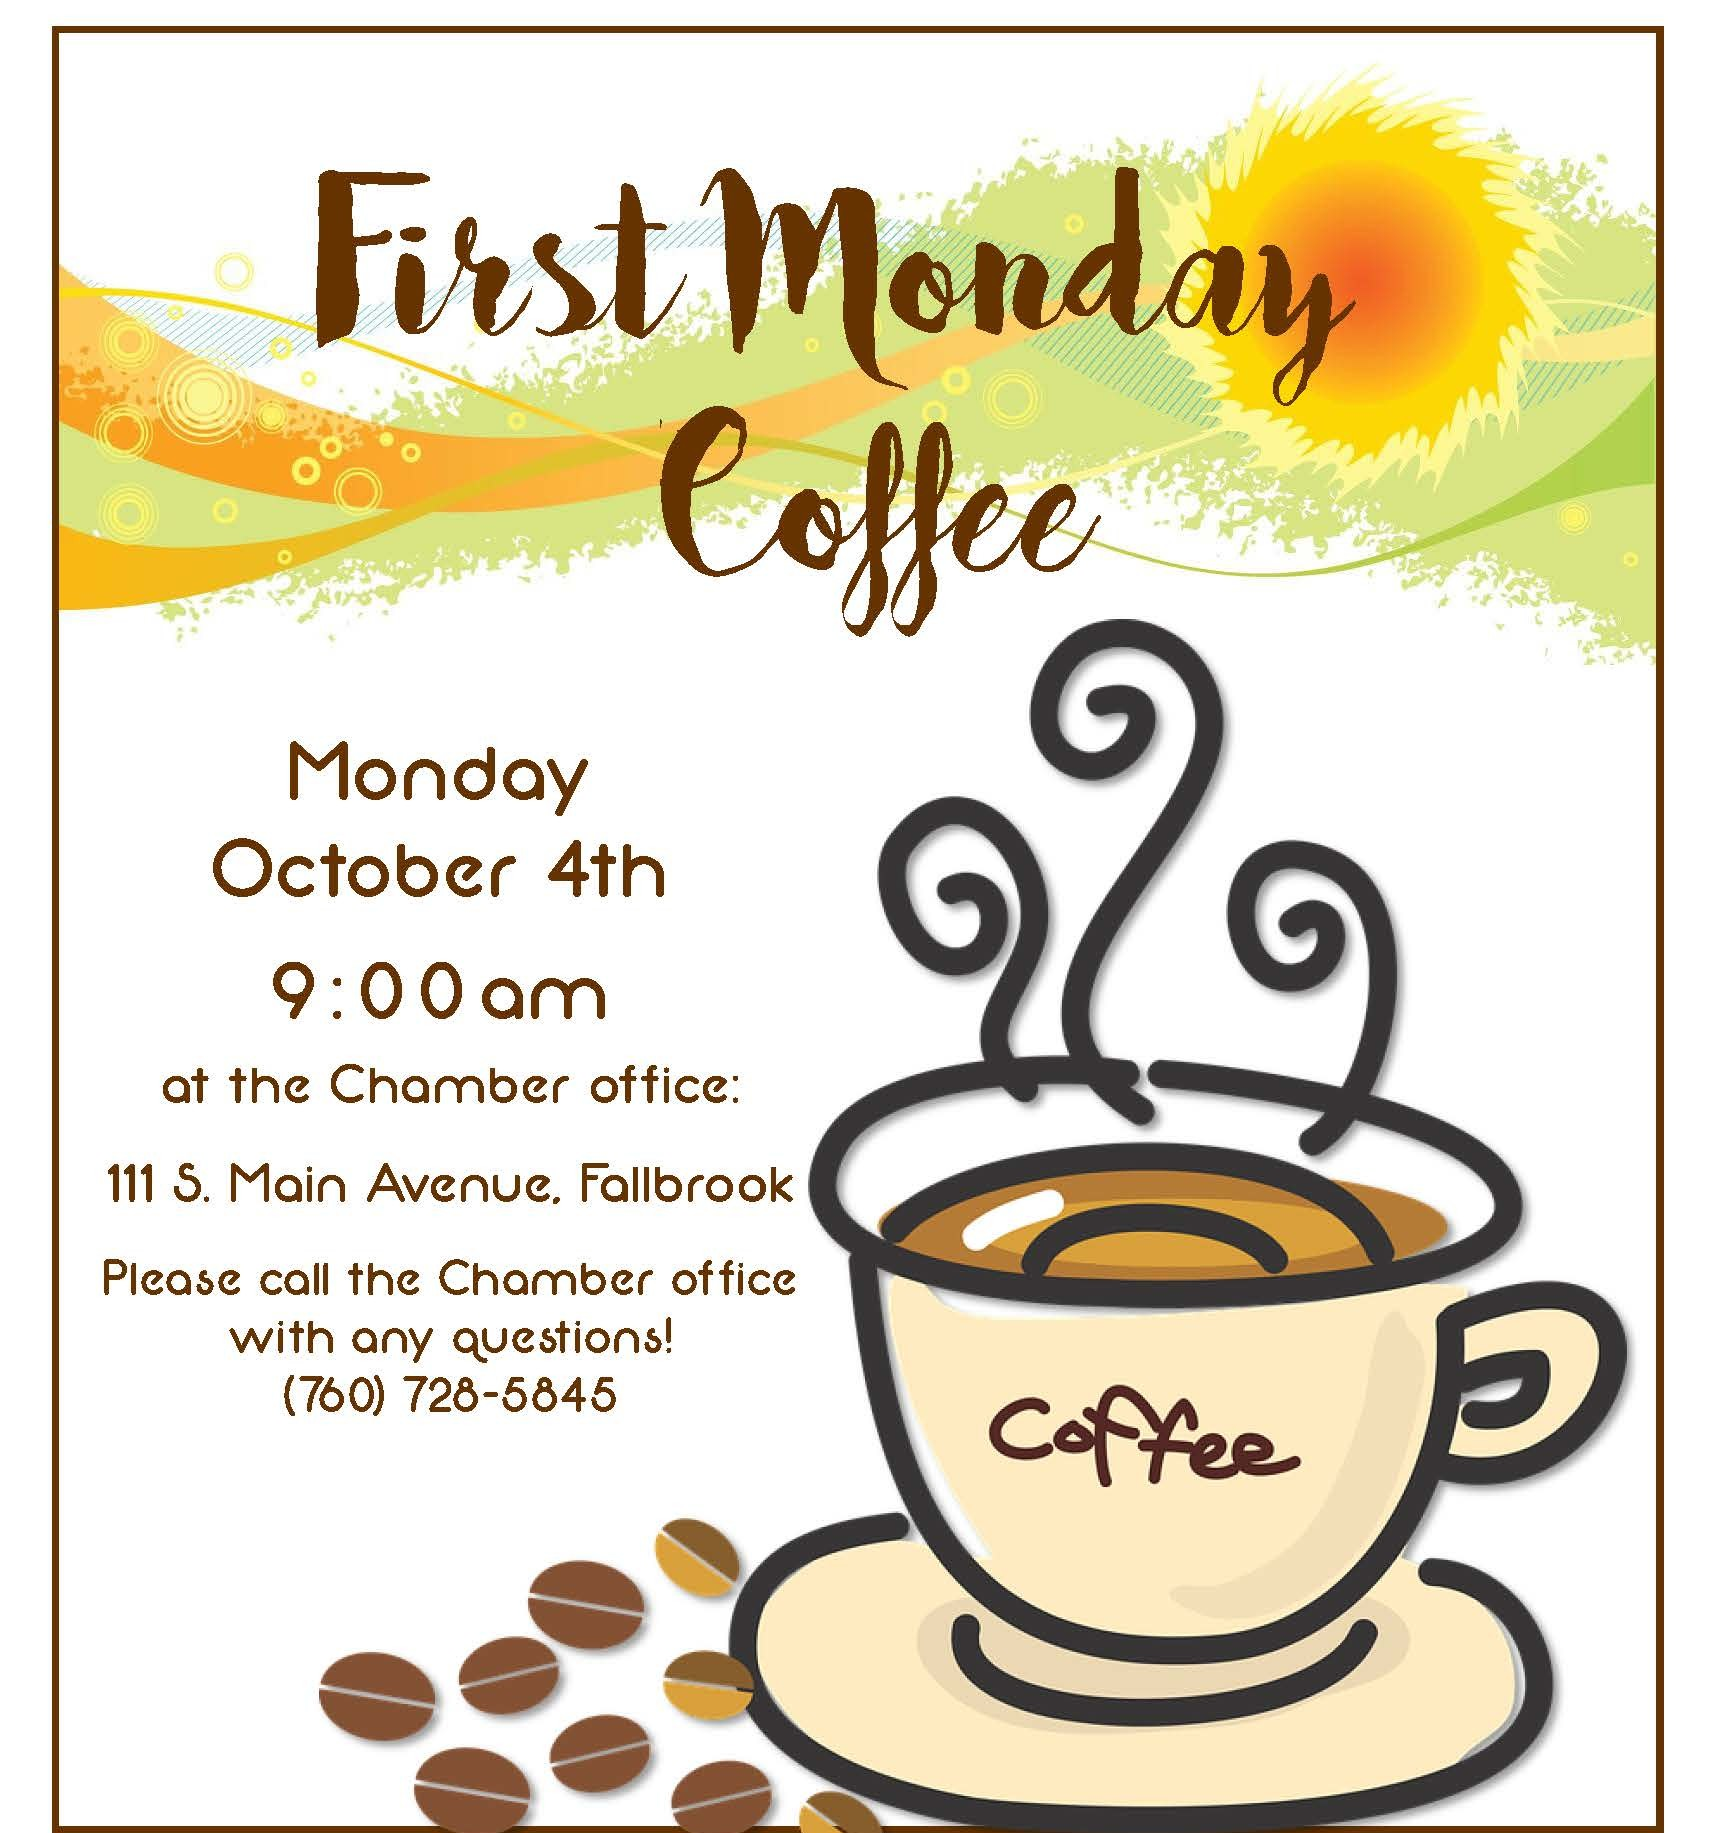 First Monday Coffee- October 4th @ 9AM